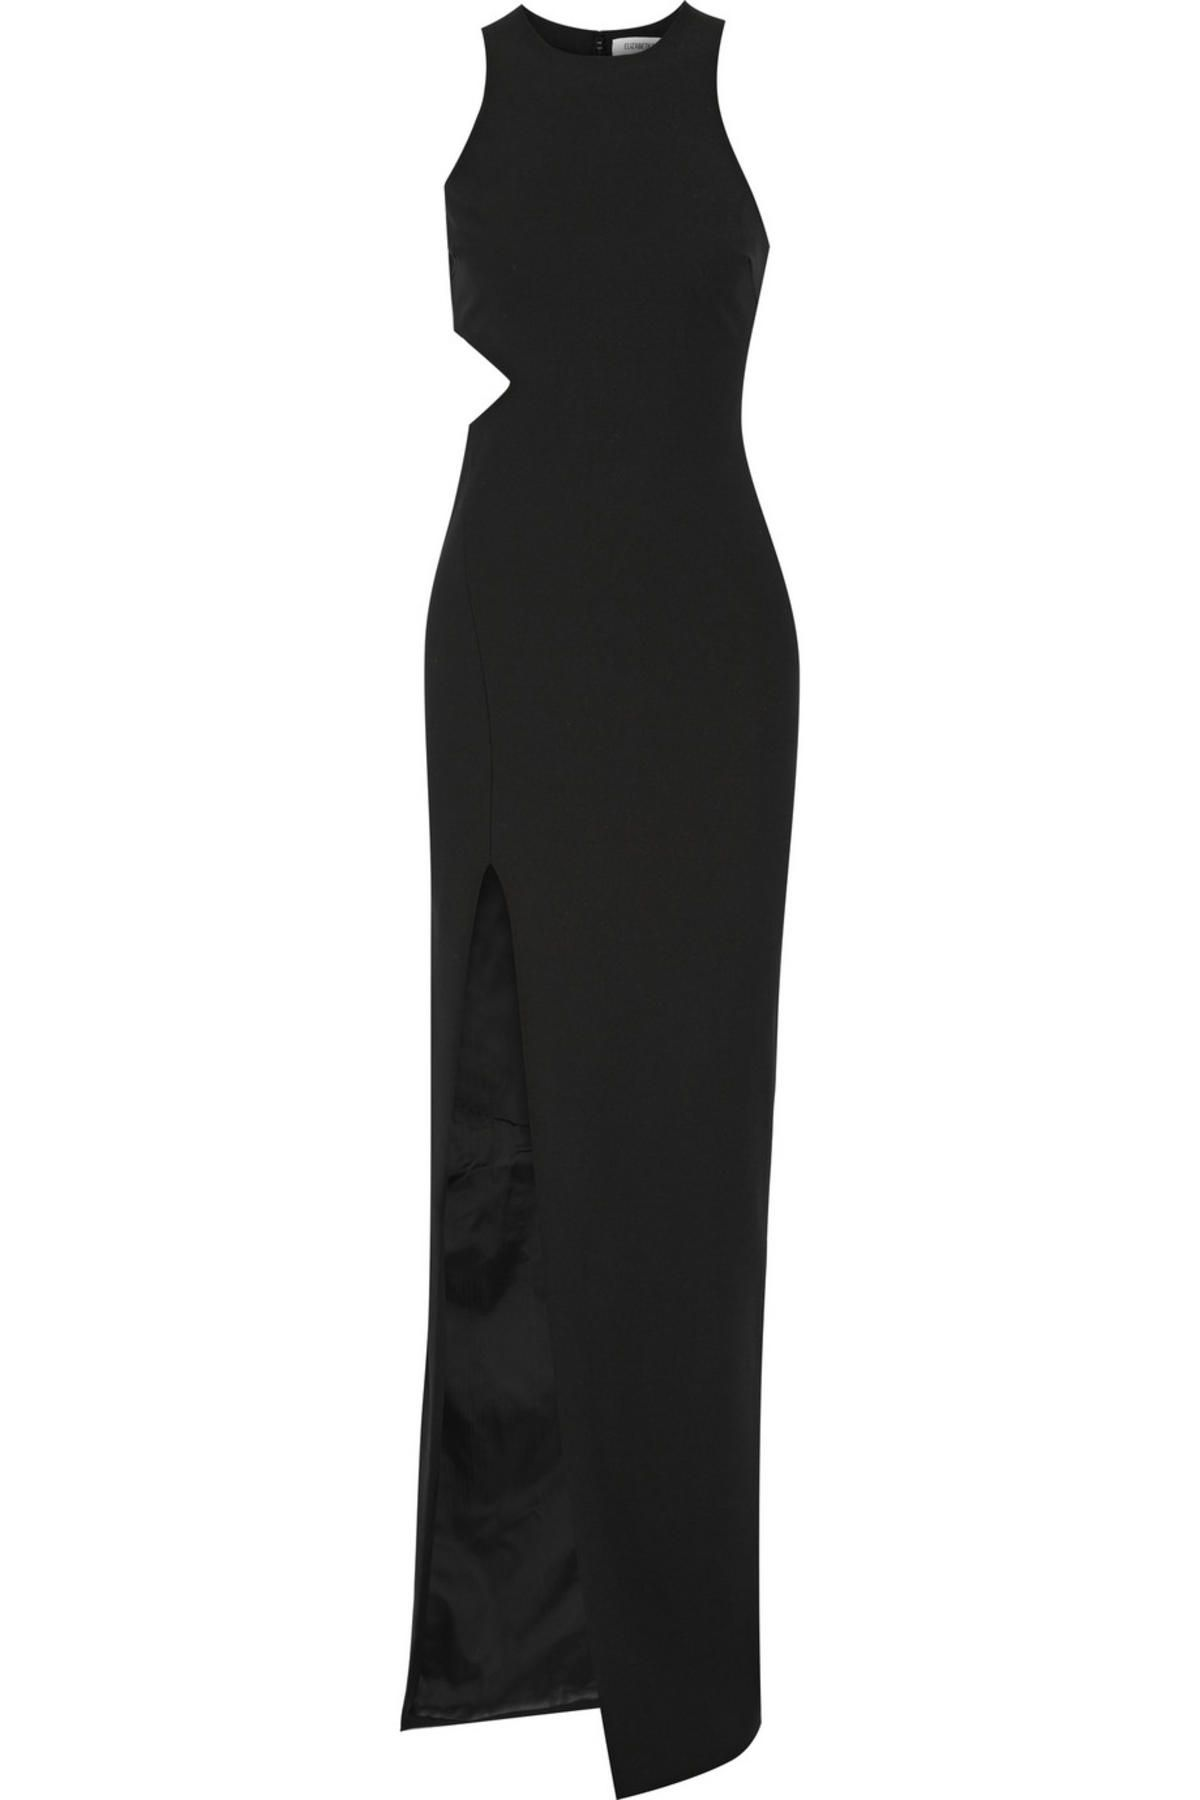 Alyssaus fancy lbd long black dress long black lbd and fancy